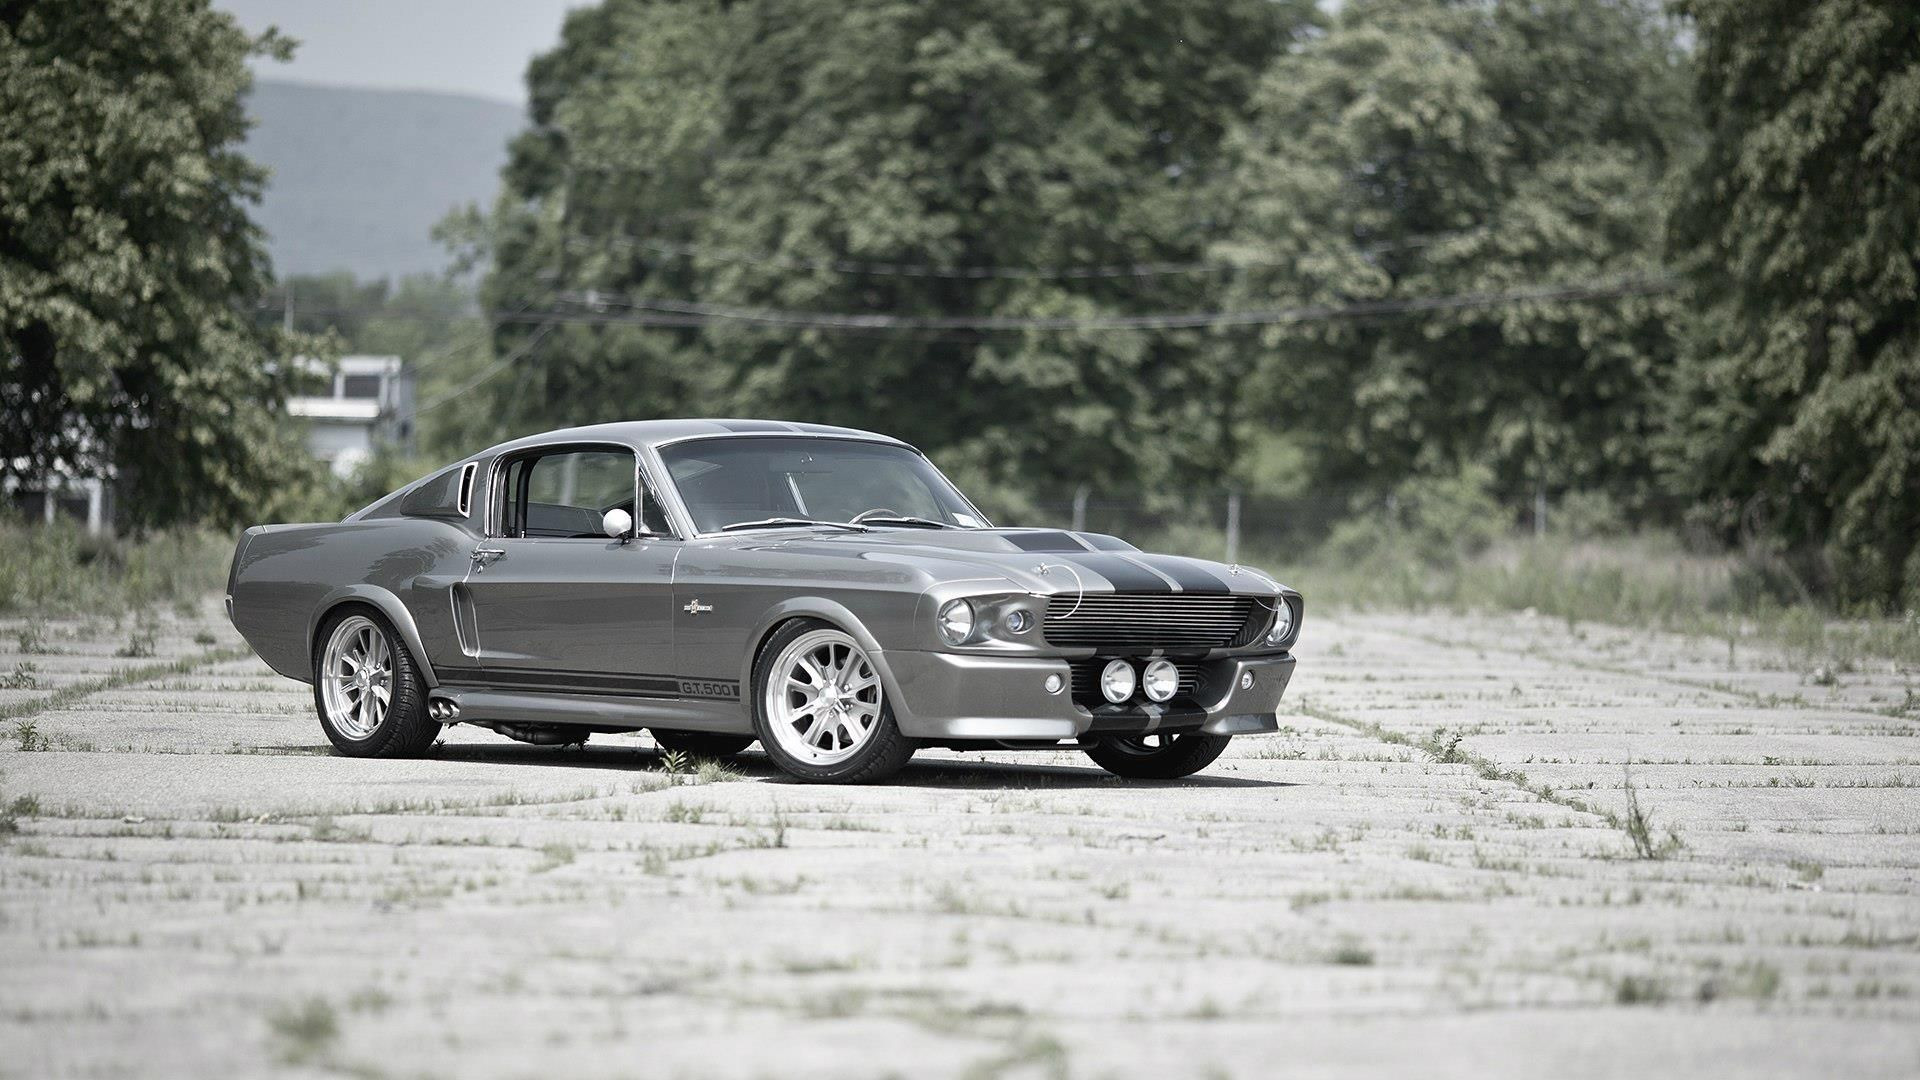 Mustang Shelby Gt500 Eleanor Y Gt350 Ford Mustang Ford Mustang